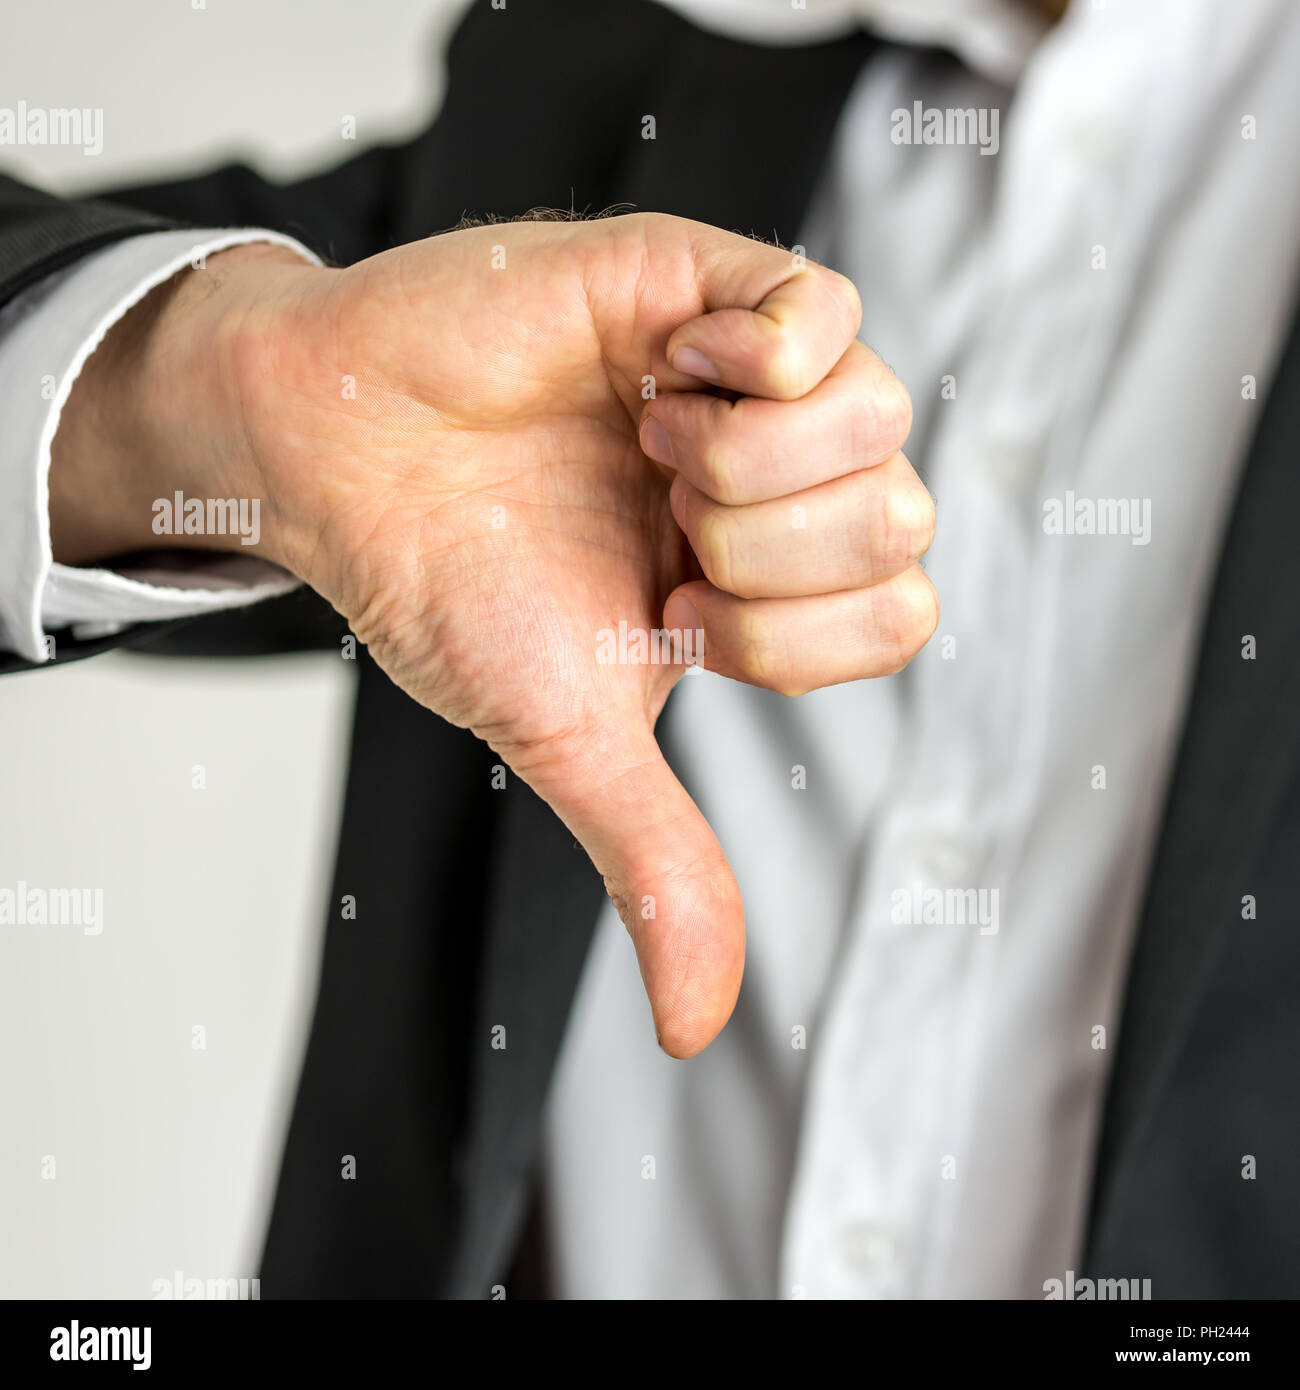 Man giving a thumbs down gesture of disapproval showing his negativity and dissatisfaction, close up of his hand. - Stock Image